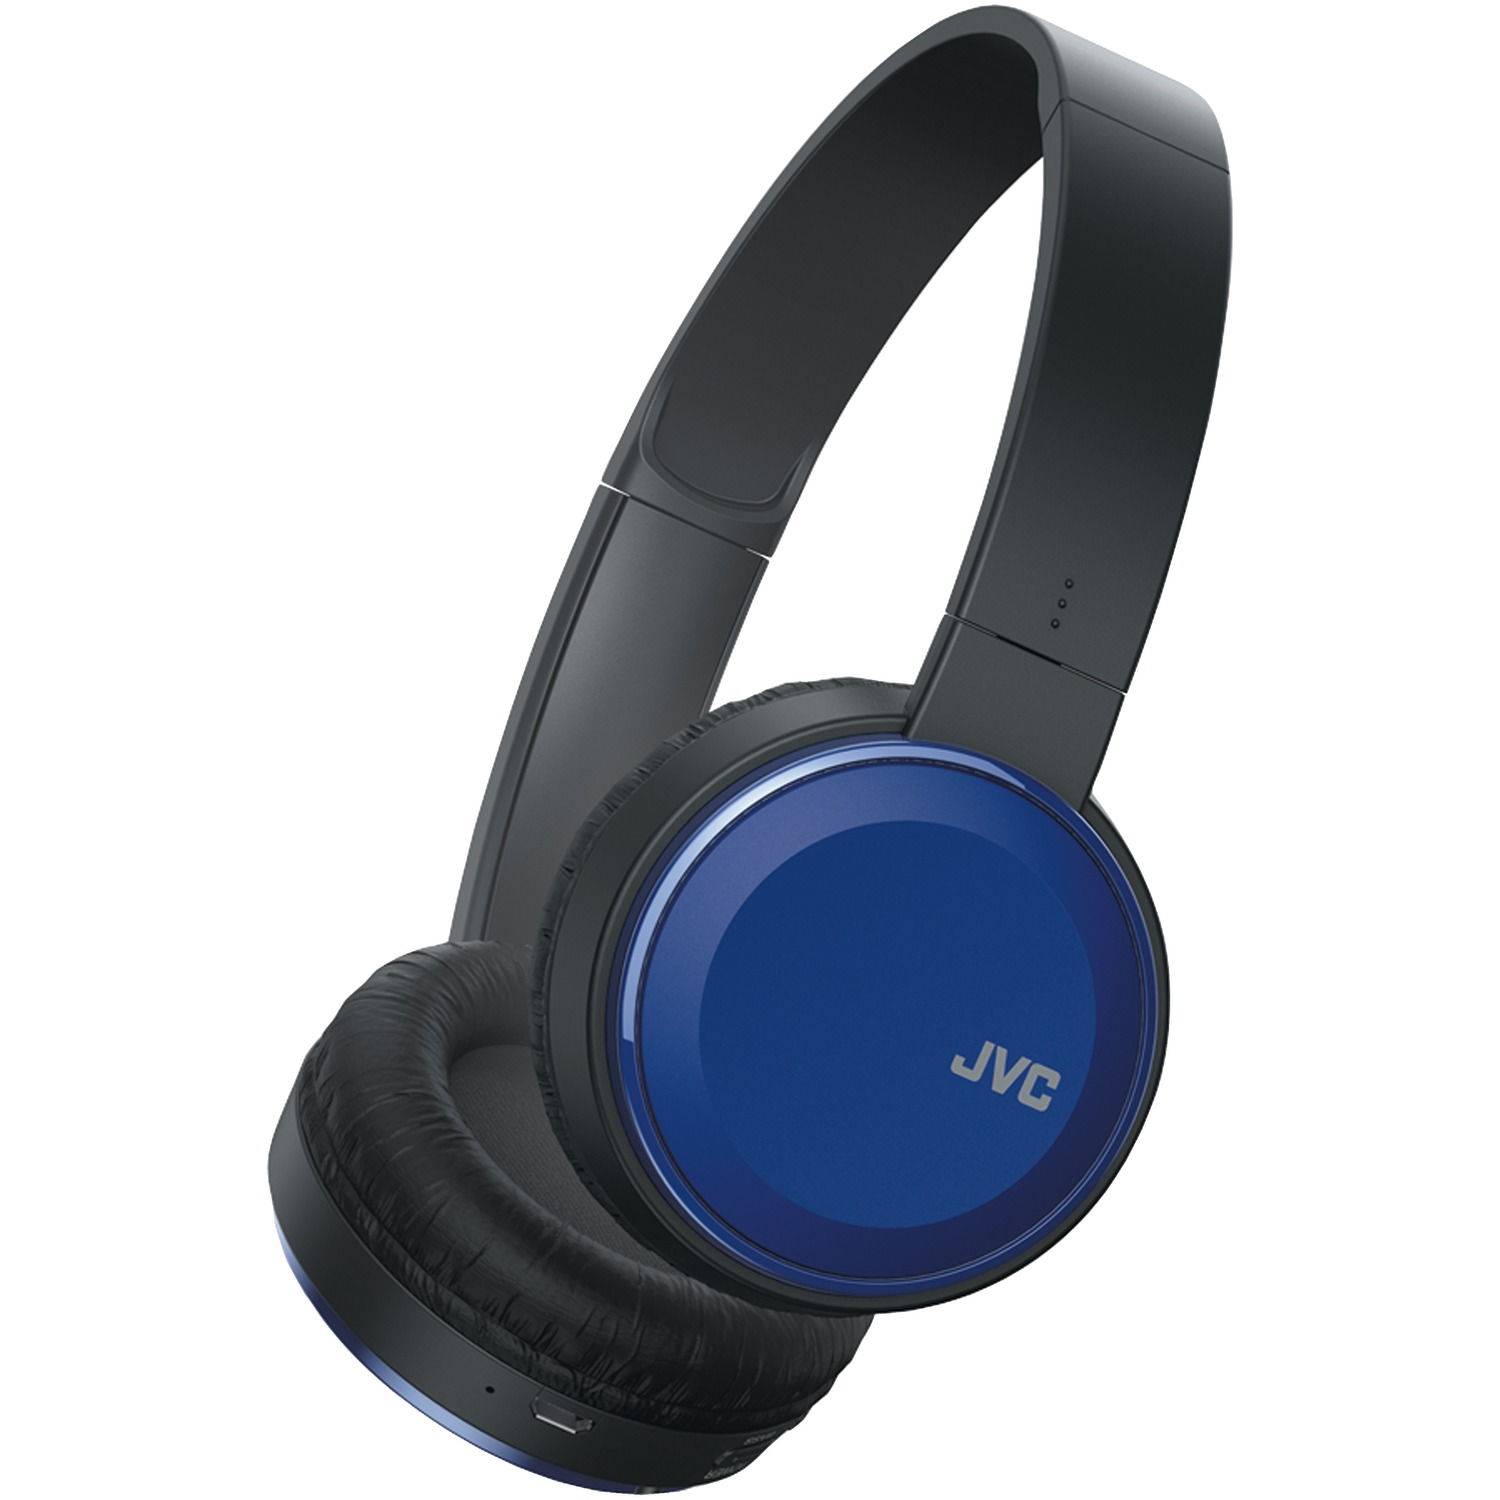 Image for JVC HA-S190BT - headphones with mic from Circuit City